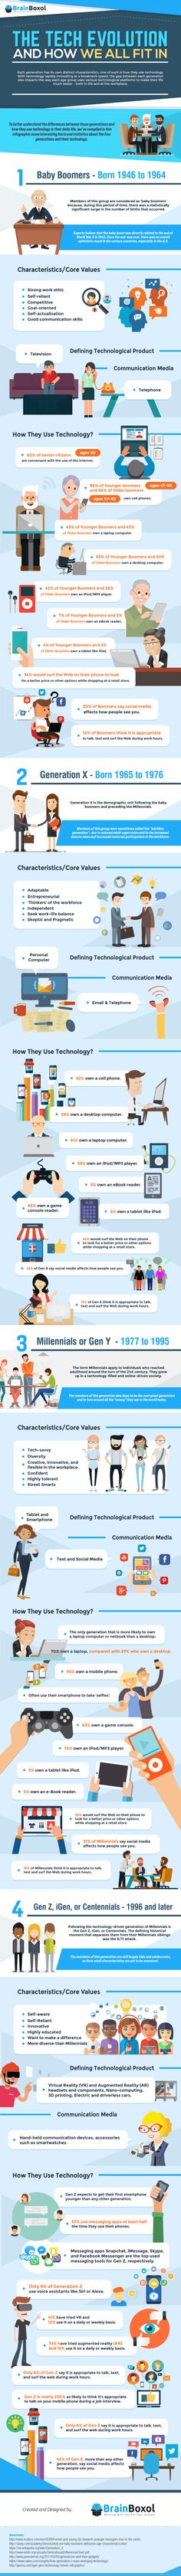 The Tech Evolution And How We All Fit In (Infographic)